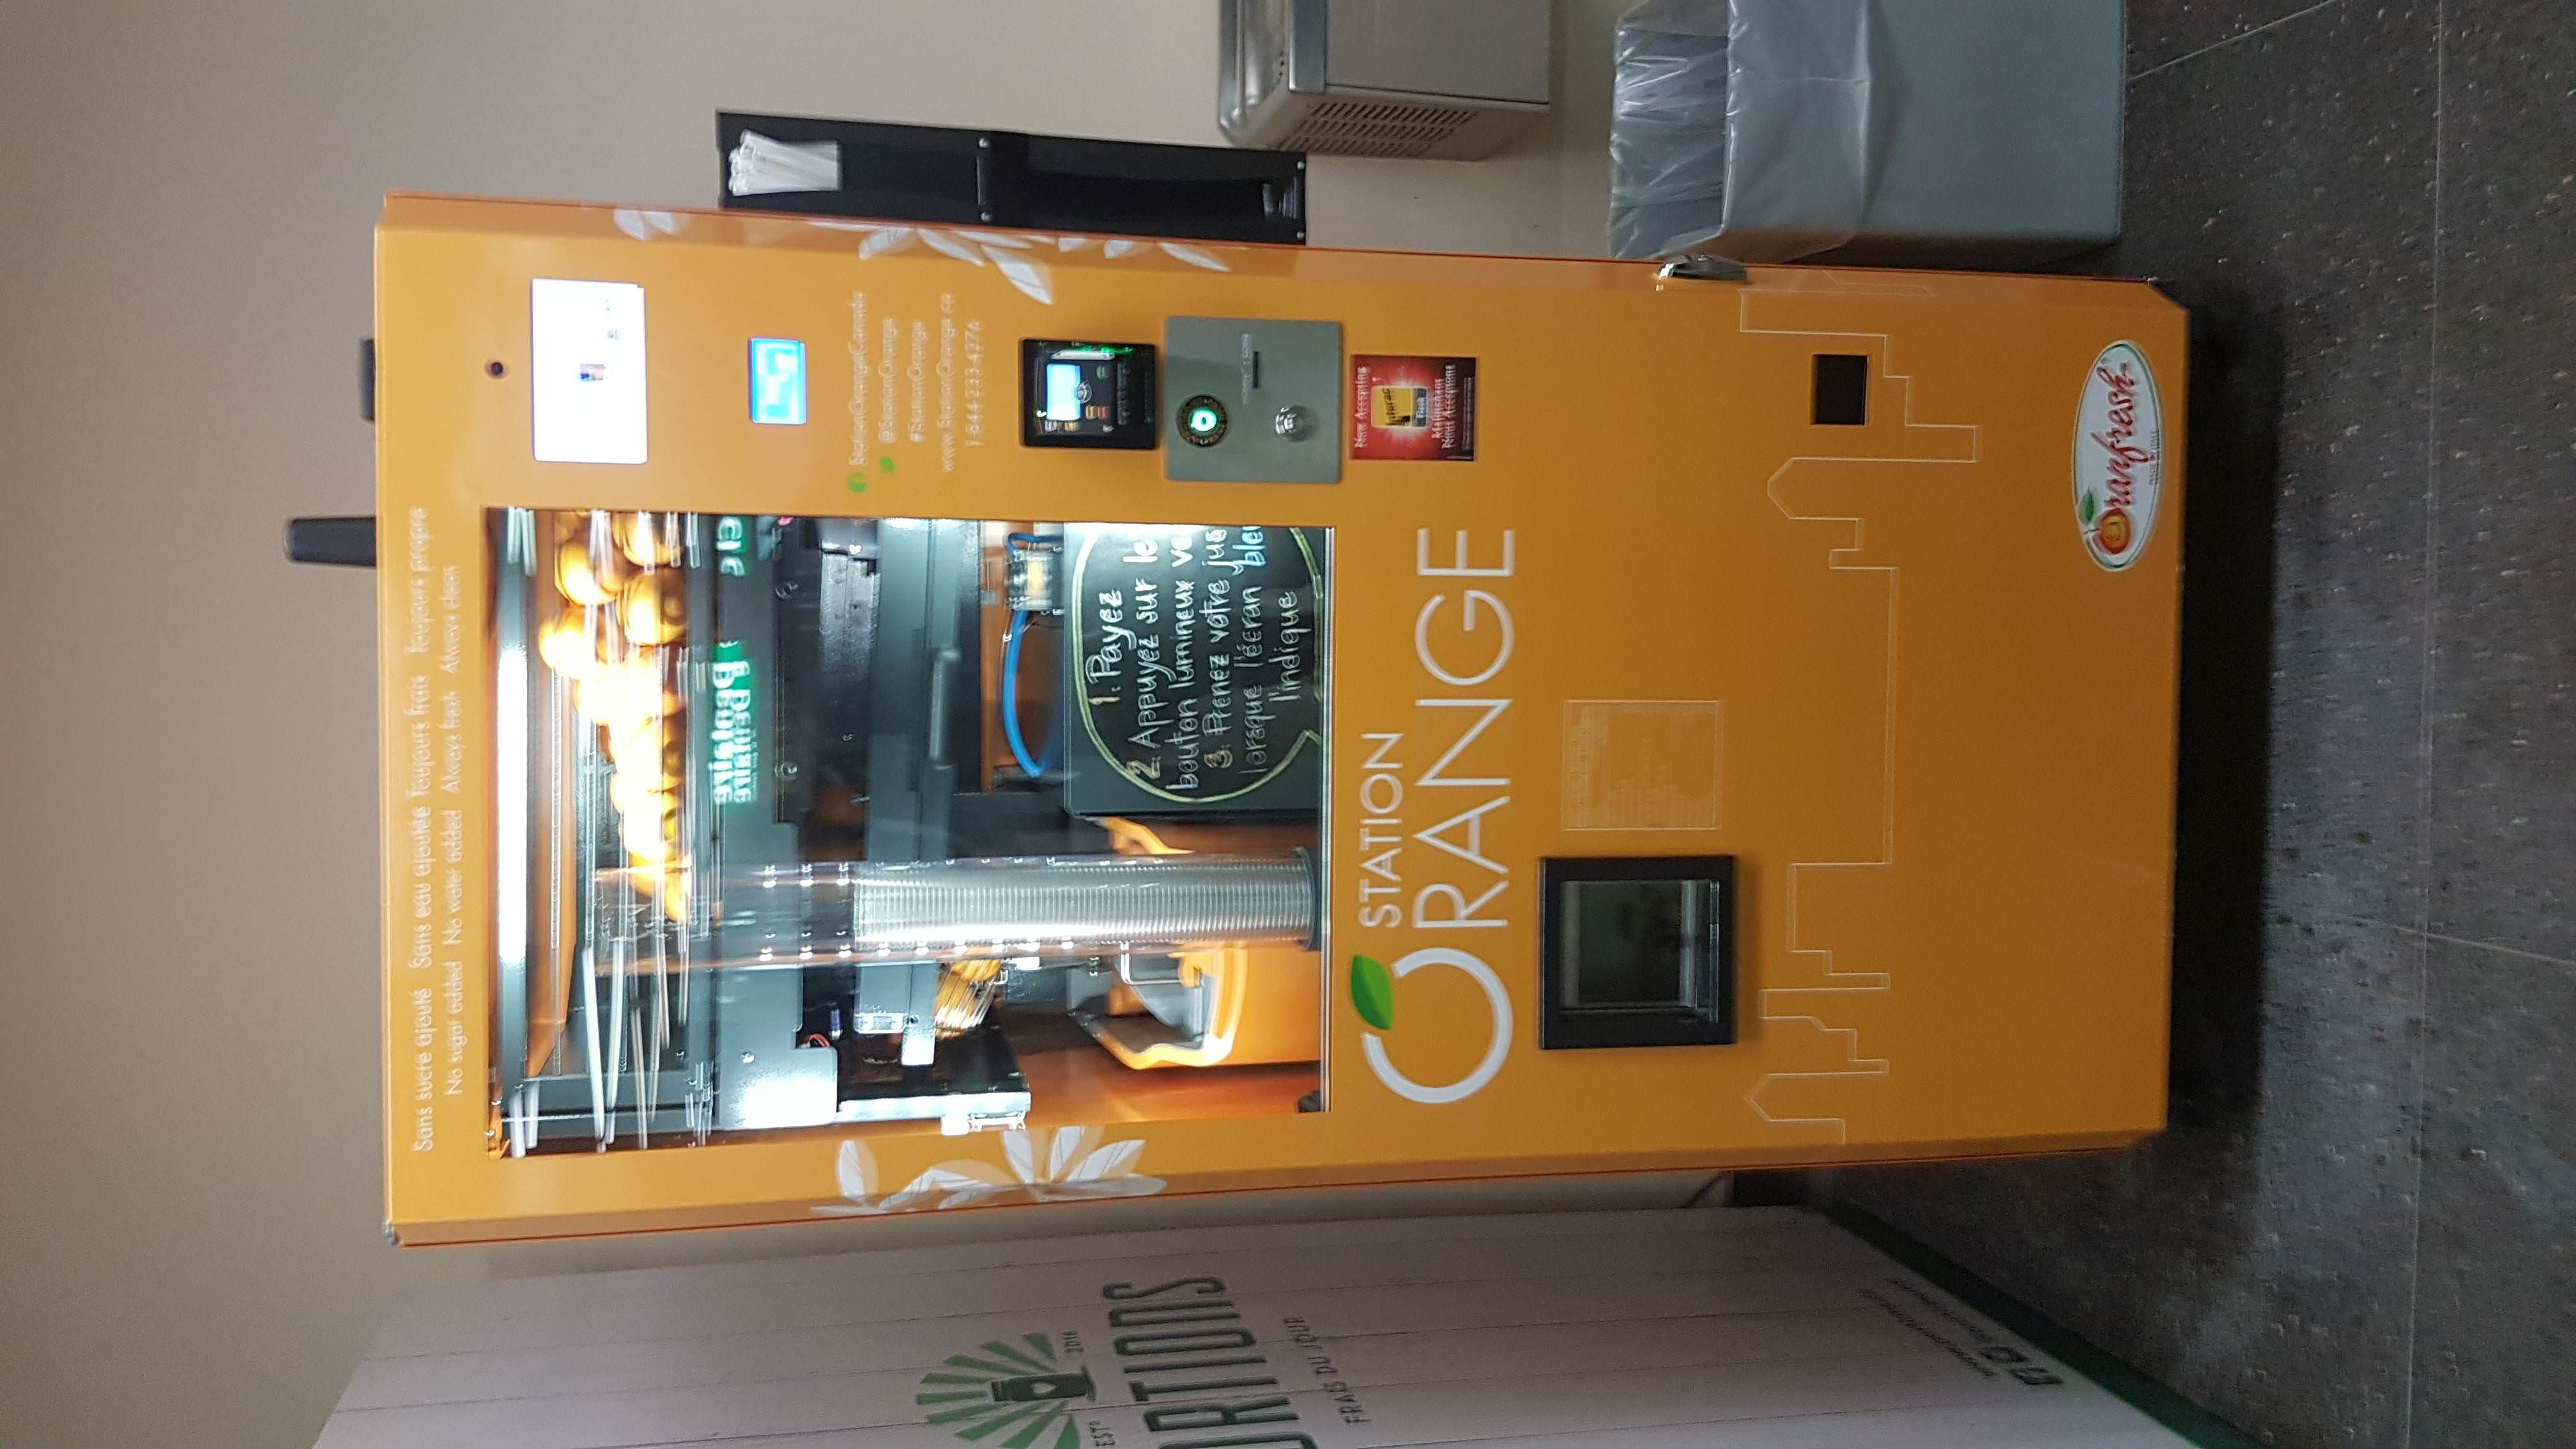 This Canadian Train Station Has A Fresh Squeezed Orange Juice